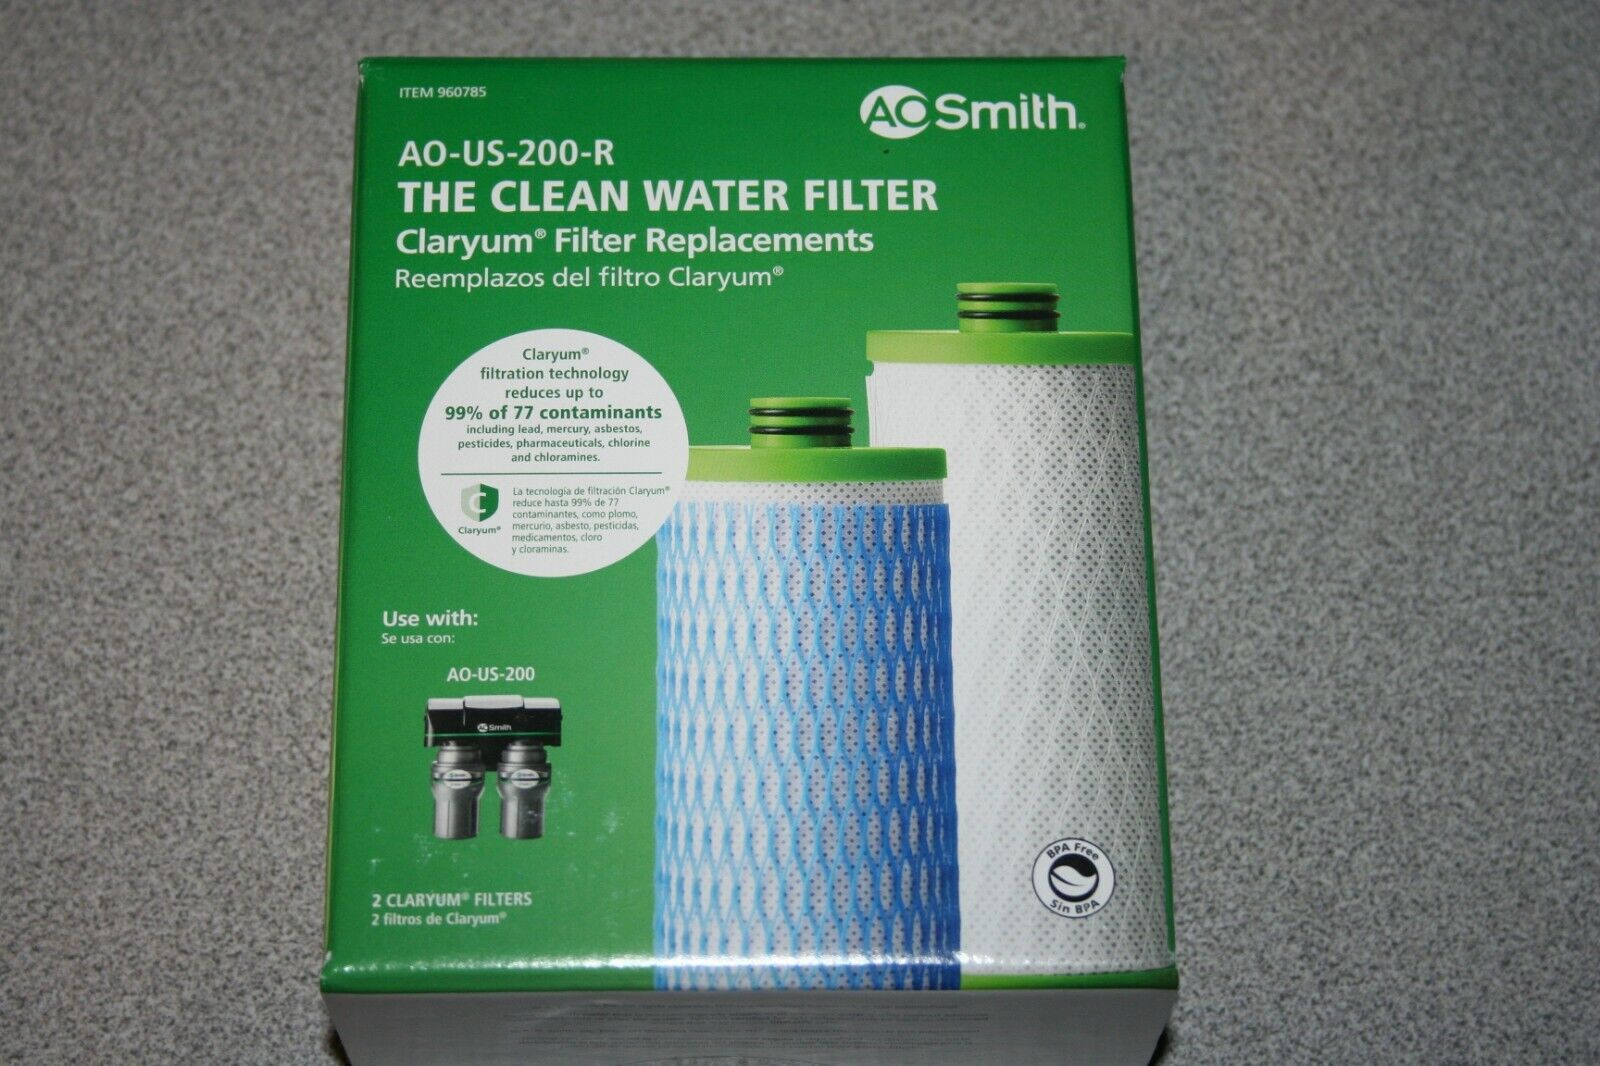 AO Smith AO-US-200-R The Clean Water Filter Replacements Claryum NEW